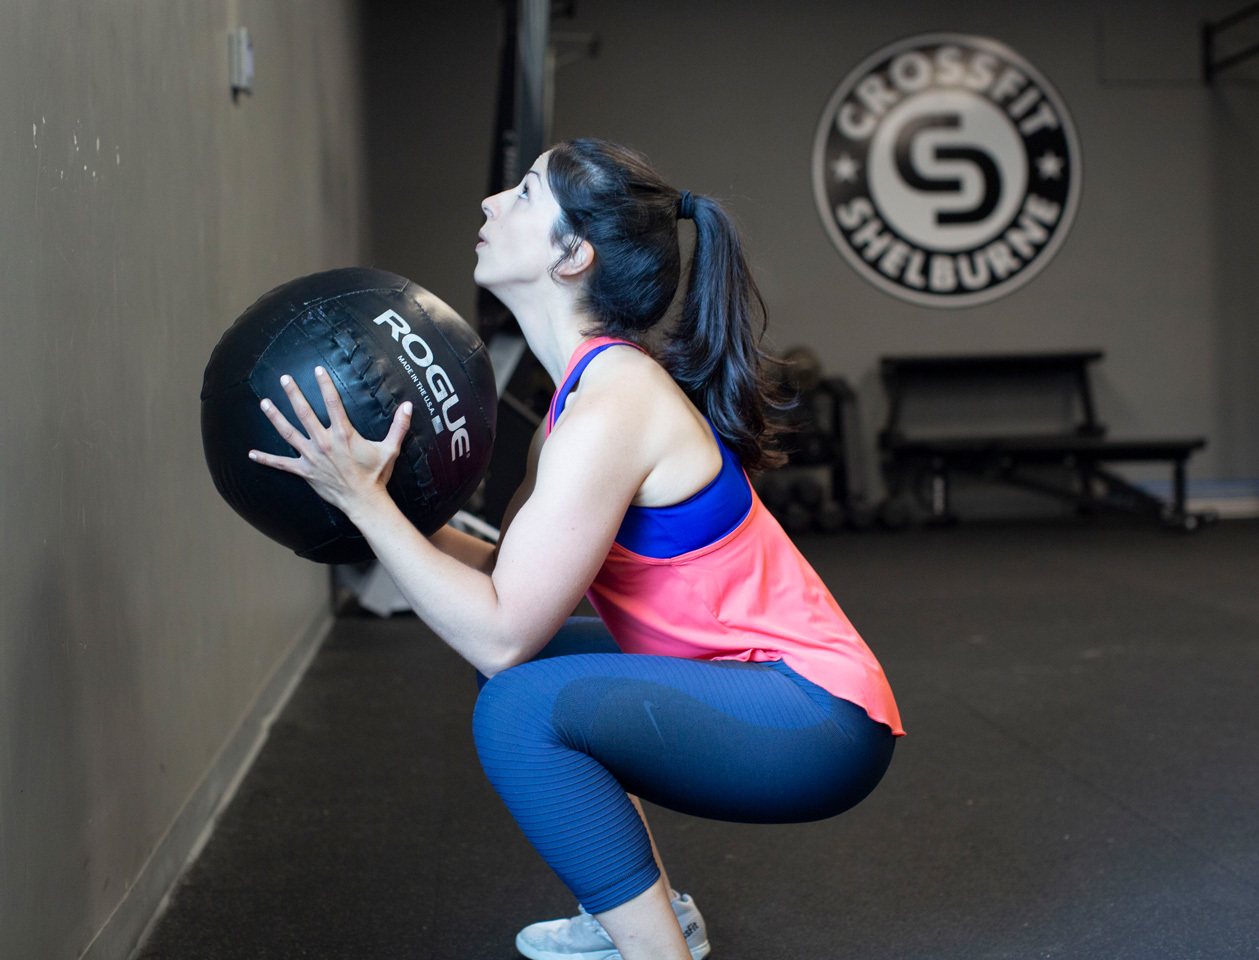 brunette woman squats with a ball at crossfit gym.